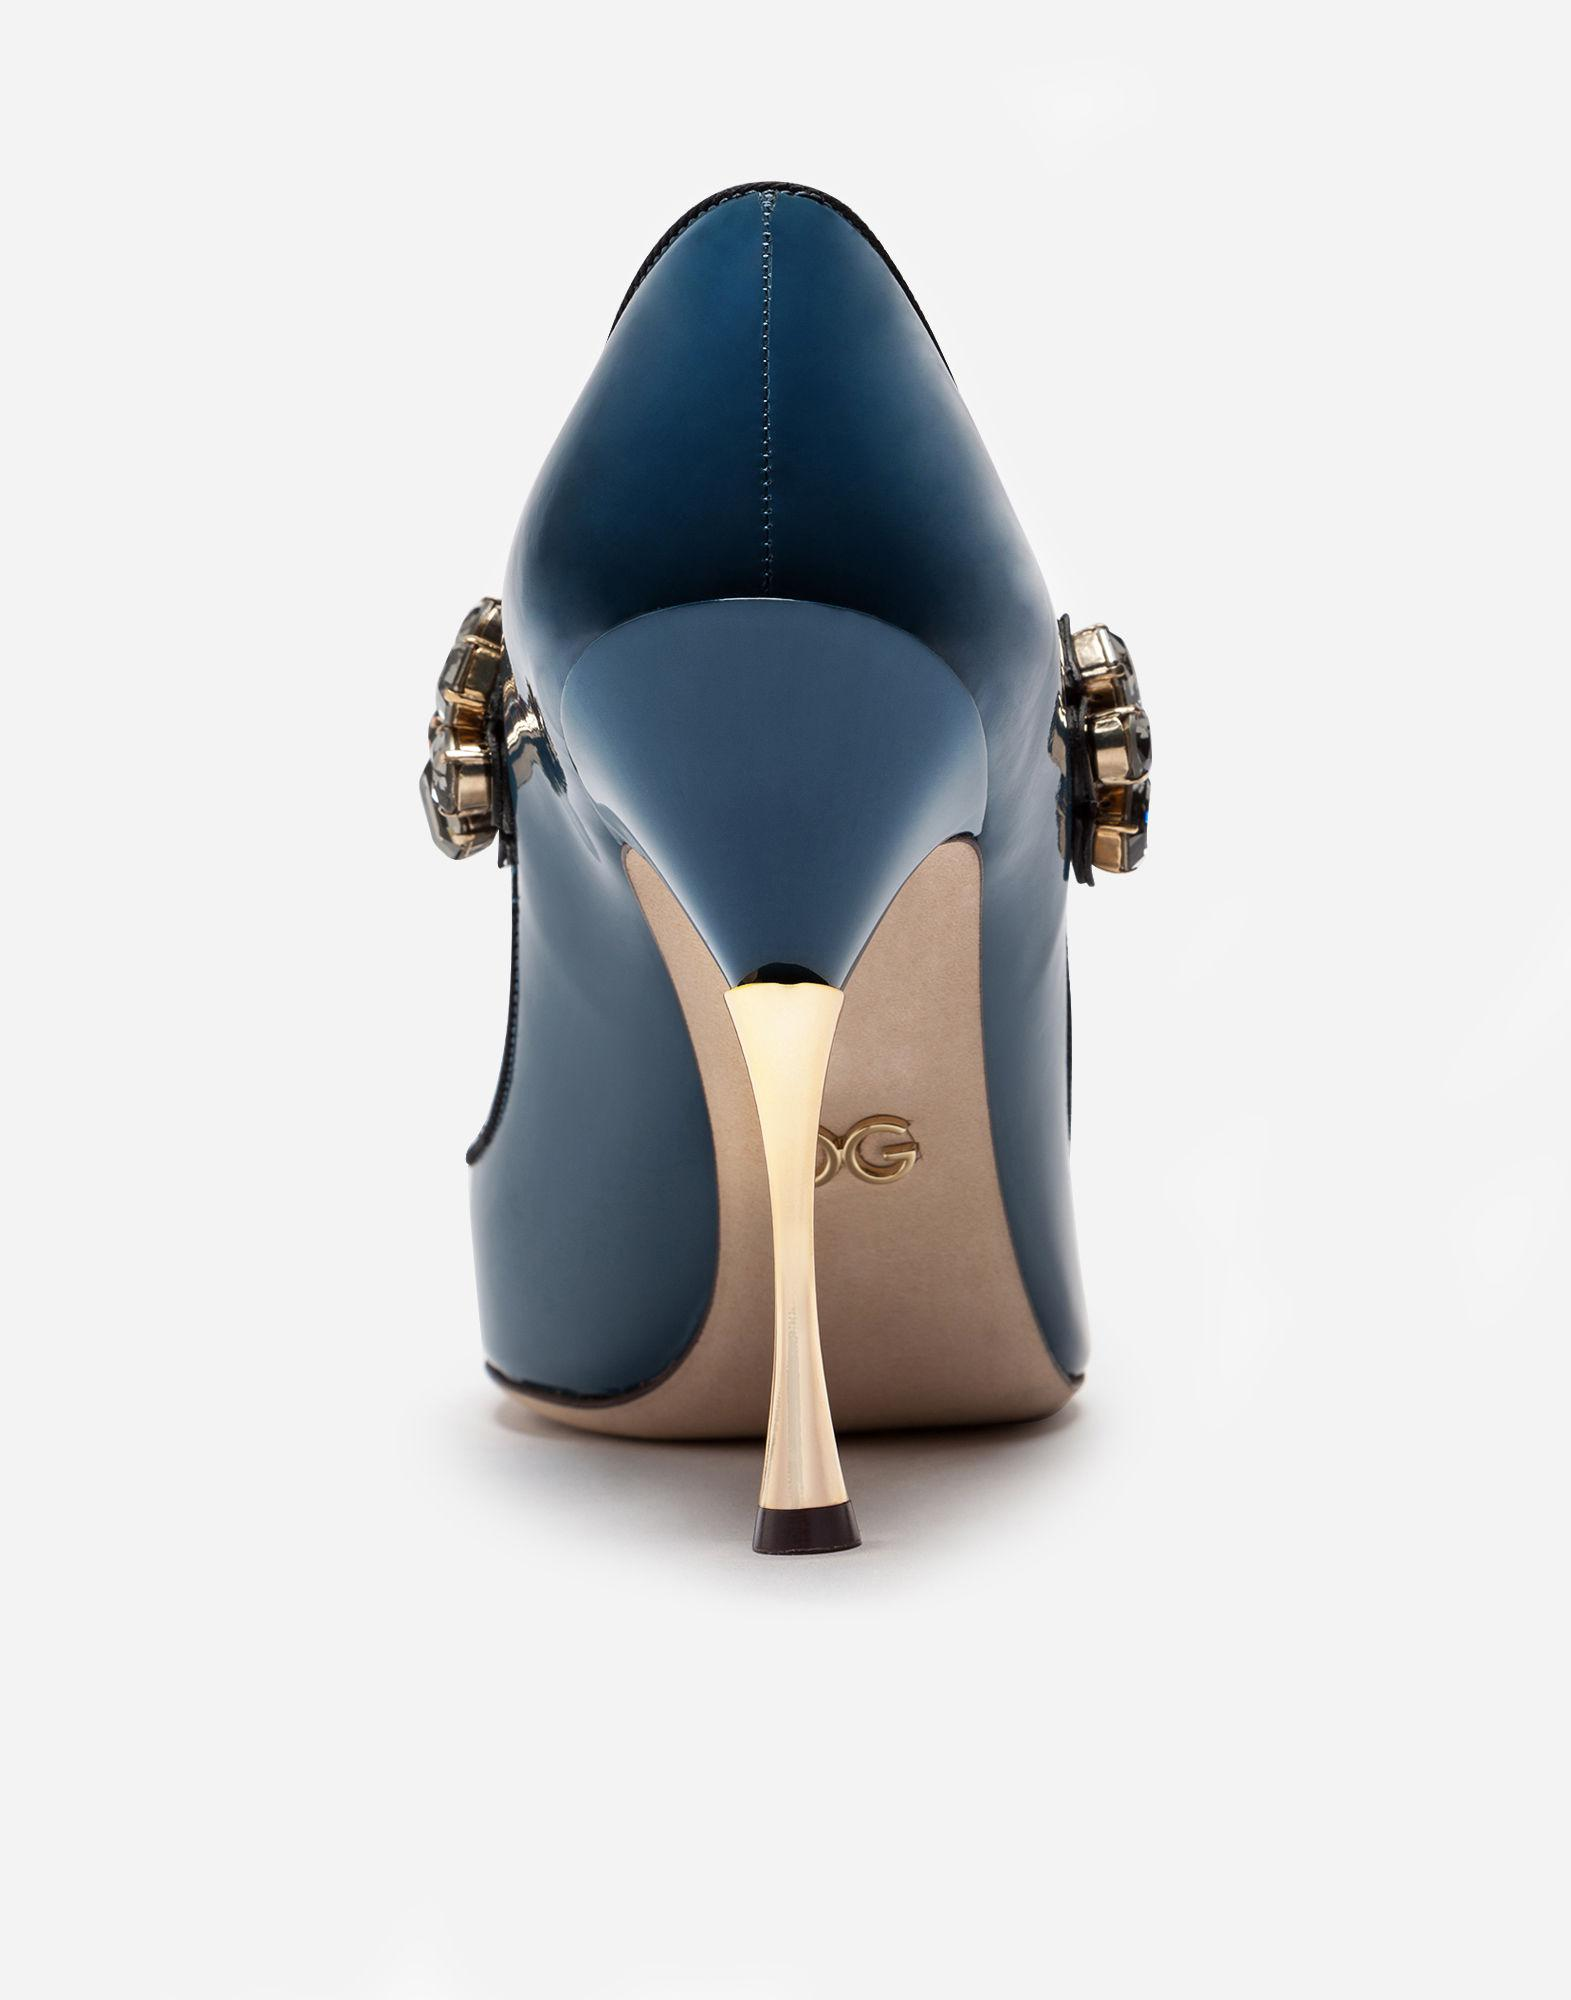 7dea9c89847c Lyst - Dolce   Gabbana Mary Janes In Varnish With Jewel Strap in Blue